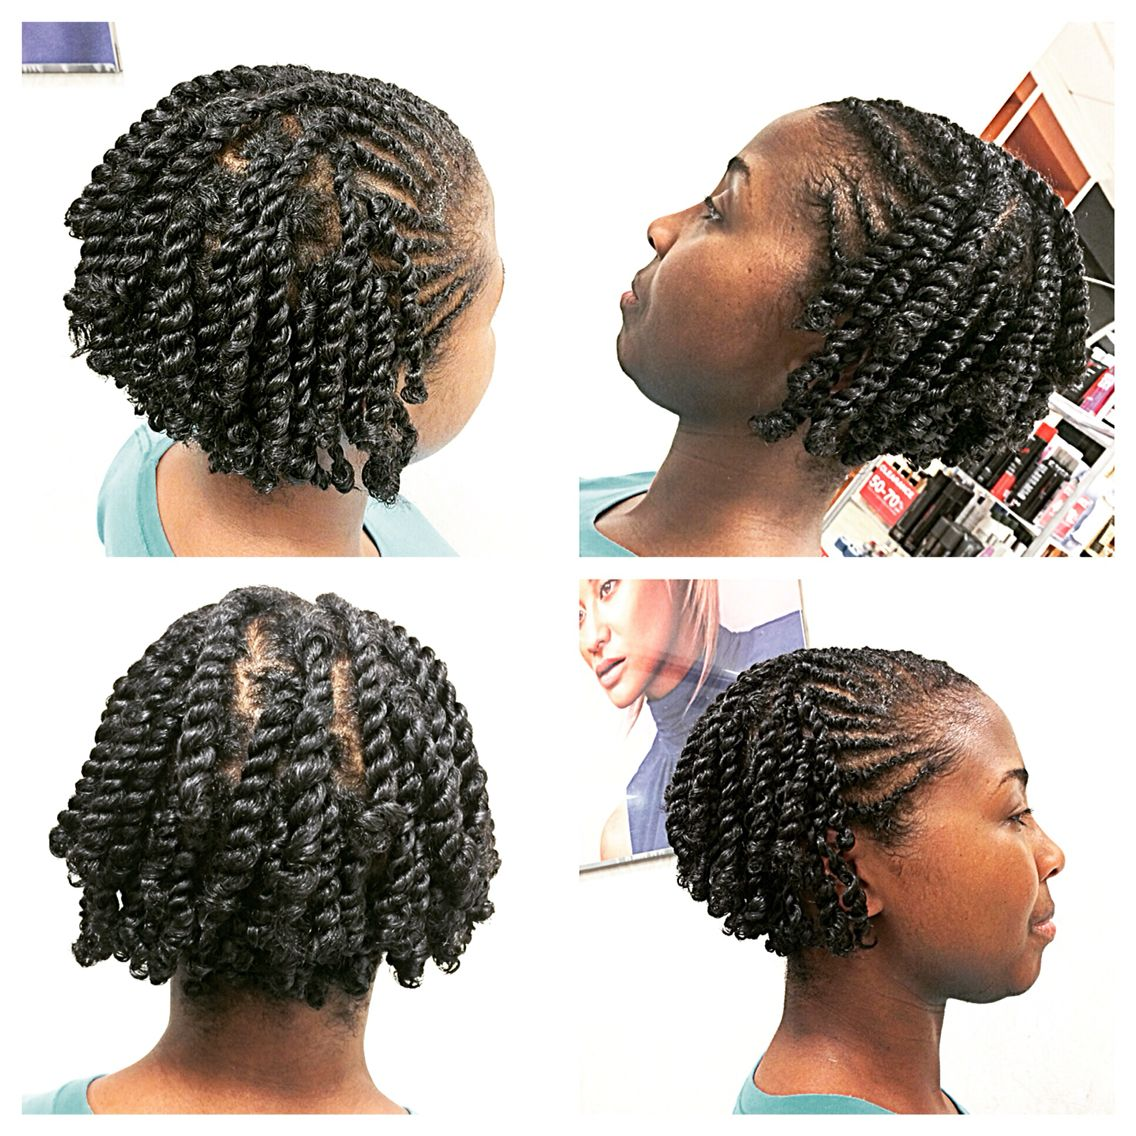 Low Maintenance Summer Workout Style For Naturally Curly Hair Twostrandtwist Flattwist Asymme Hair Twist Styles Flat Twist Hairstyles Natural Hair Styles